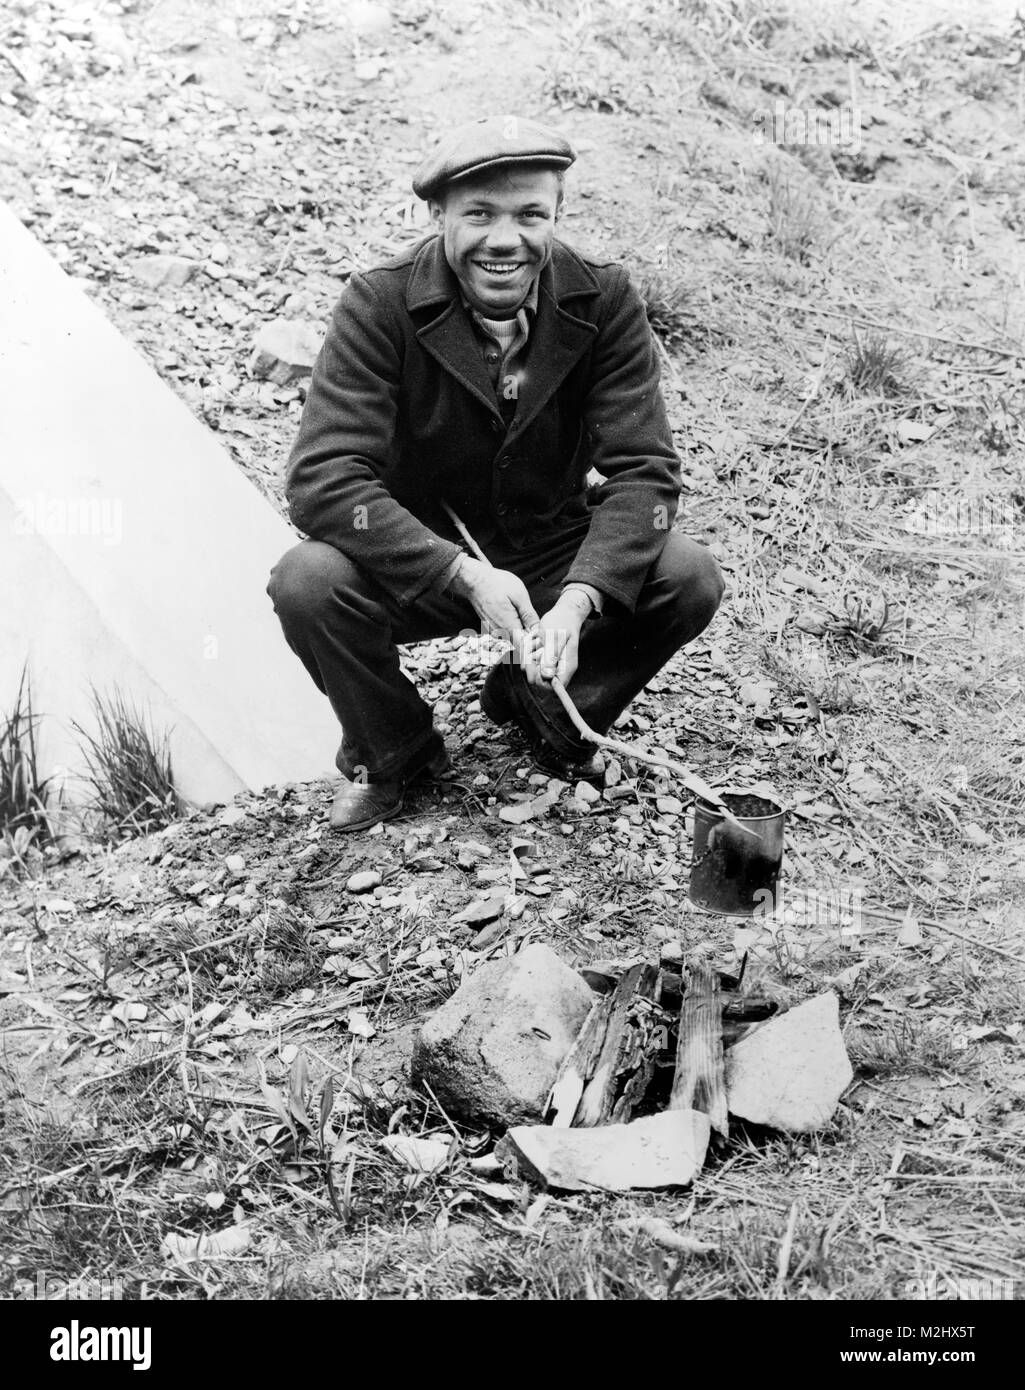 Hobo Cooking Meal, 1935 - Stock Image